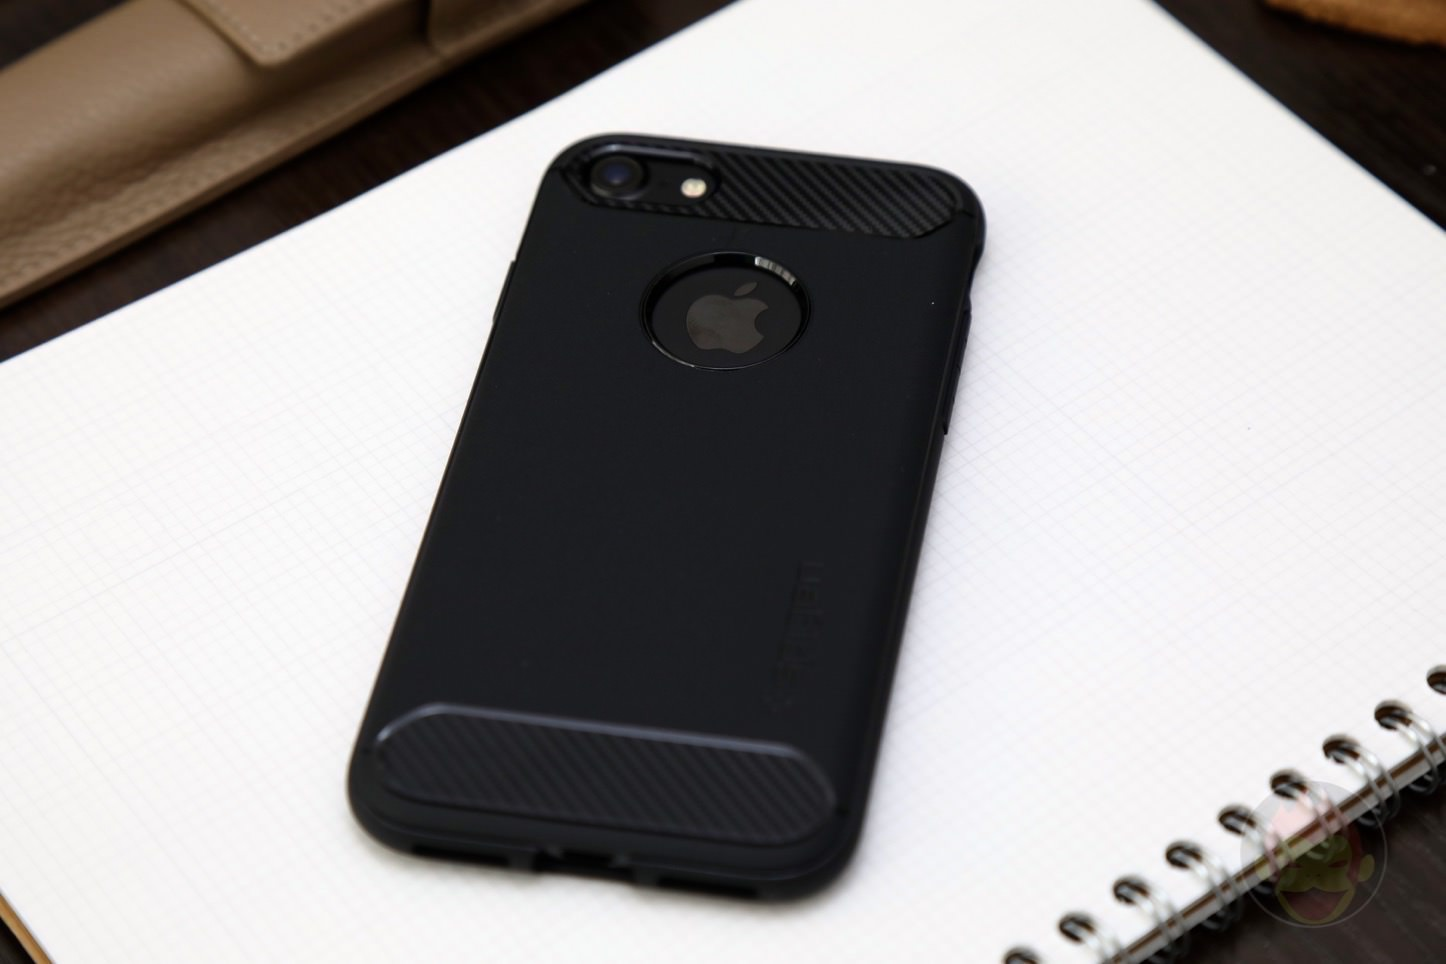 Rugged-Armor-for-iPhone7-7Plus-03.jpg